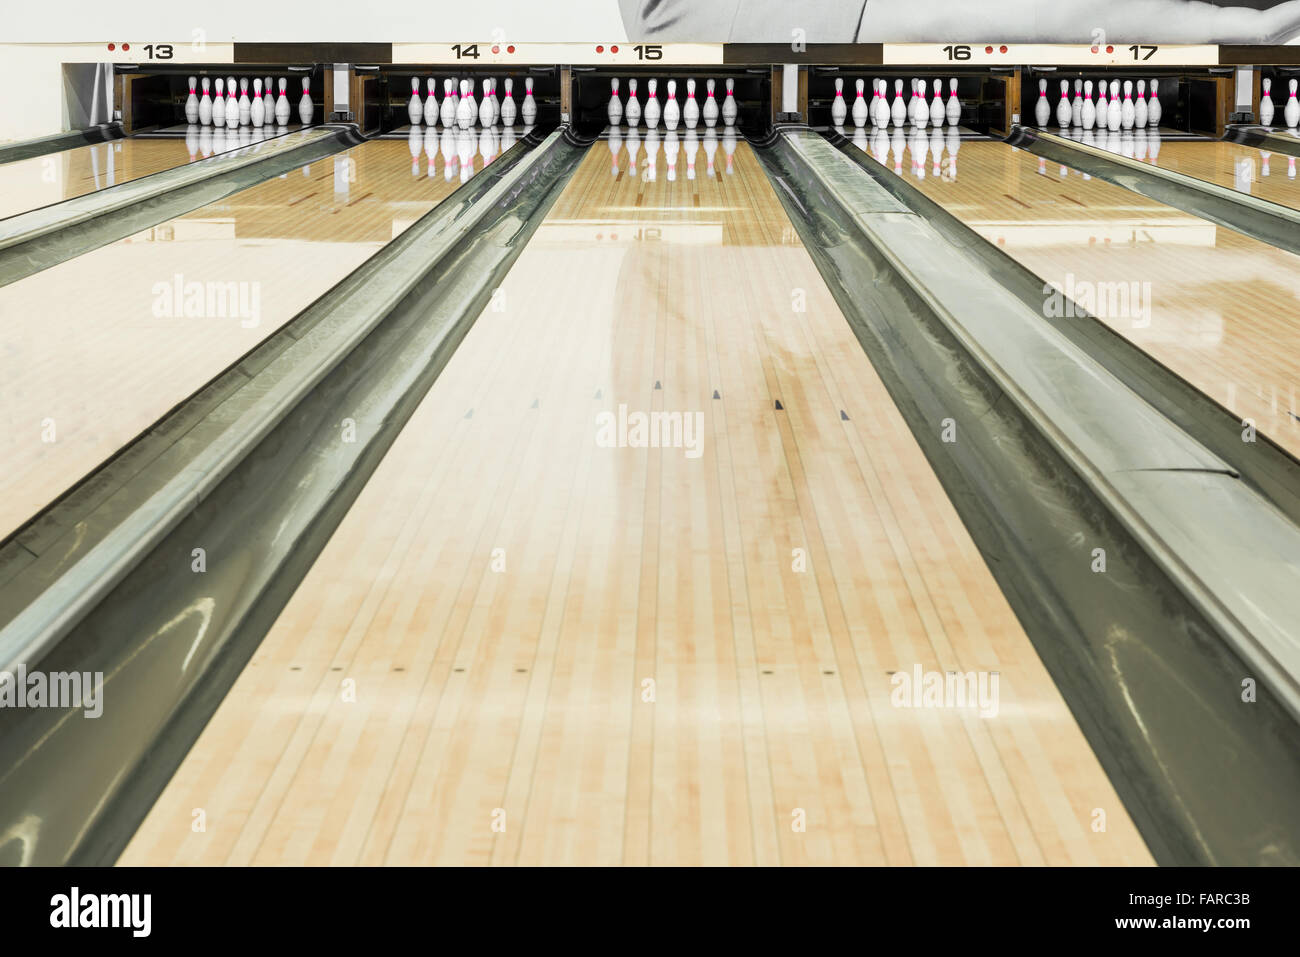 Close up of bowling pins in a row - Stock Image